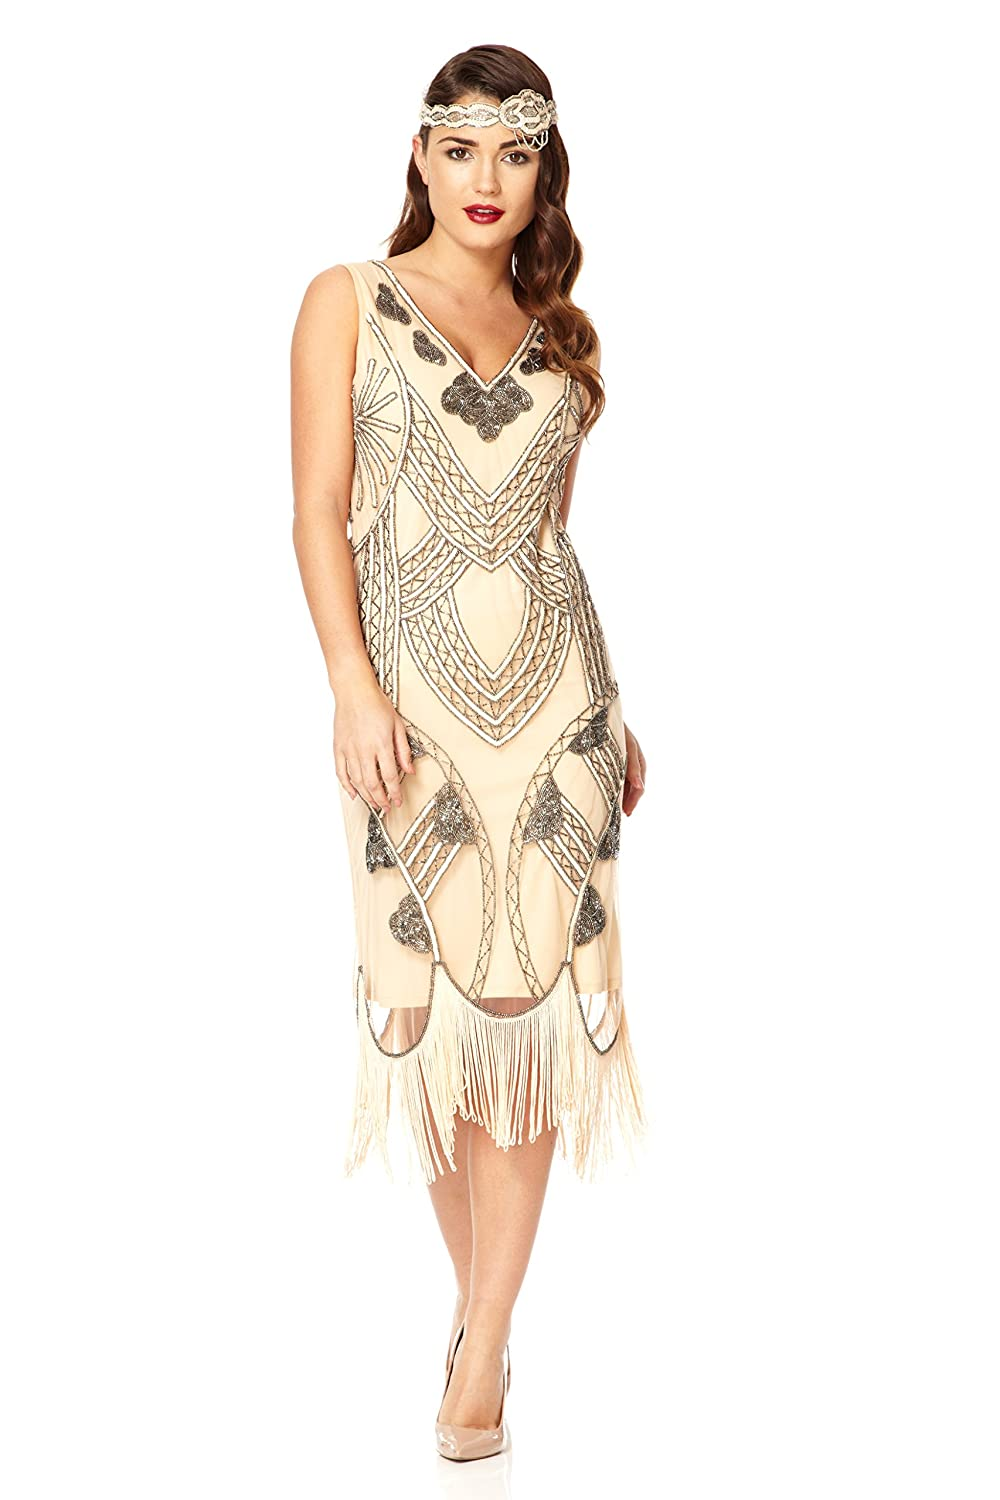 Flapper Dresses & Quality Flapper Costumes Juliet Vintage Inspired Fringe Dress in Nude Blush $115.70 AT vintagedancer.com